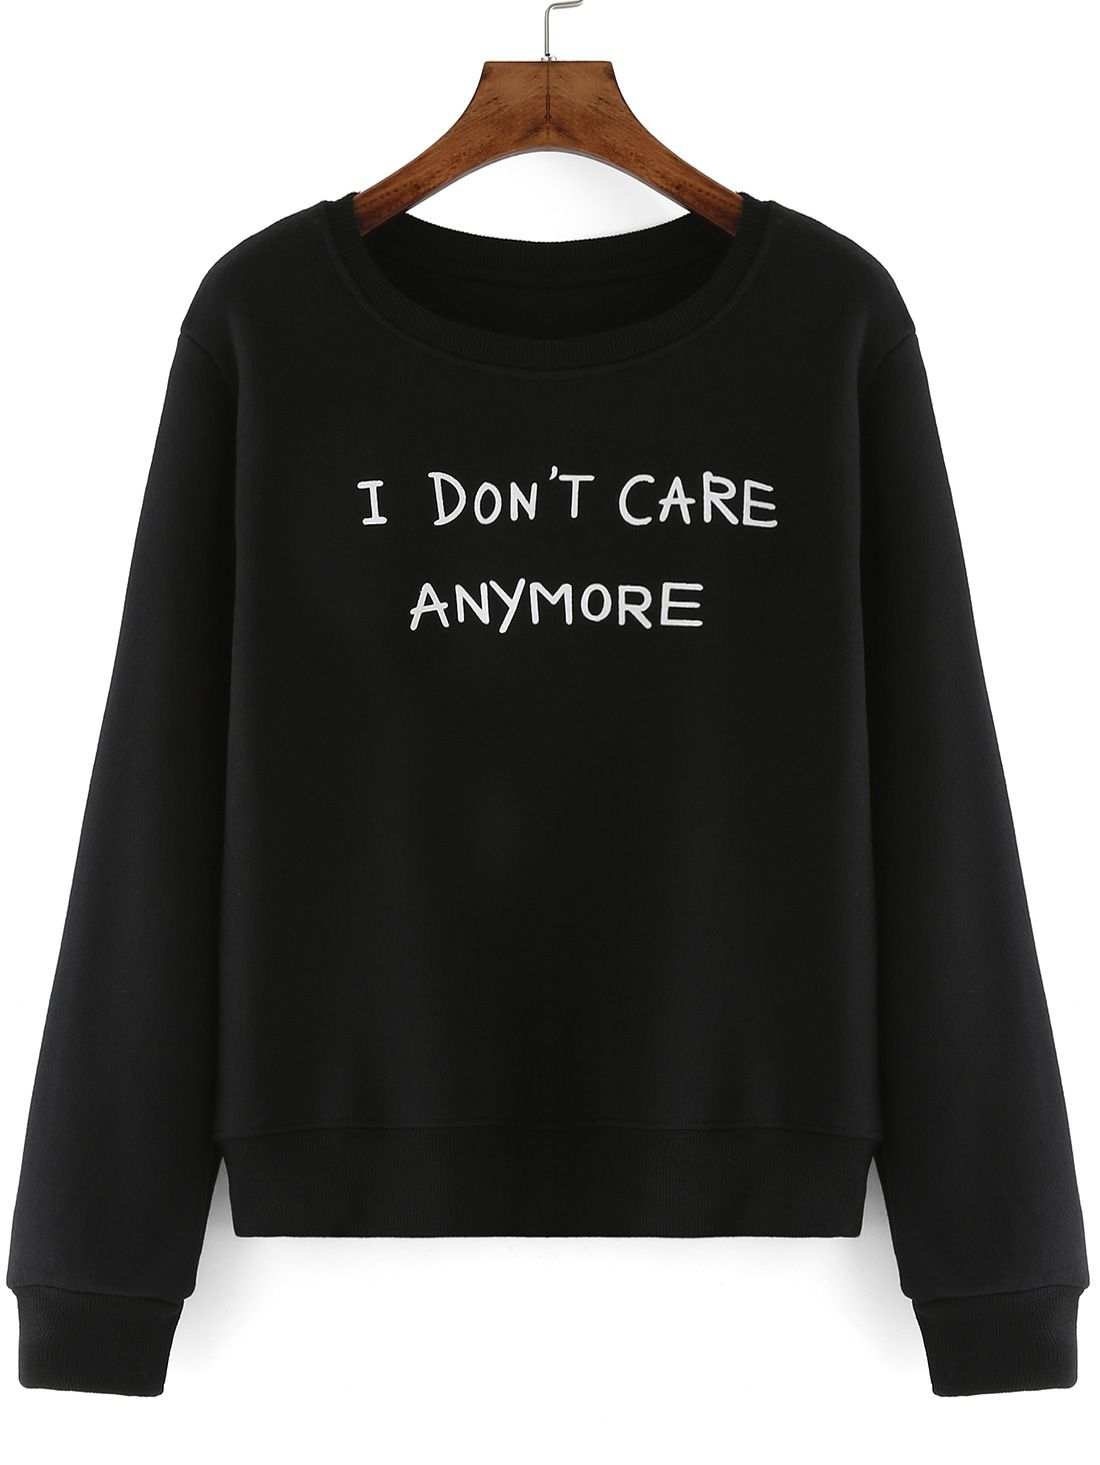 i don't care anymore ,letter print sweatshirt .Funny printing ...